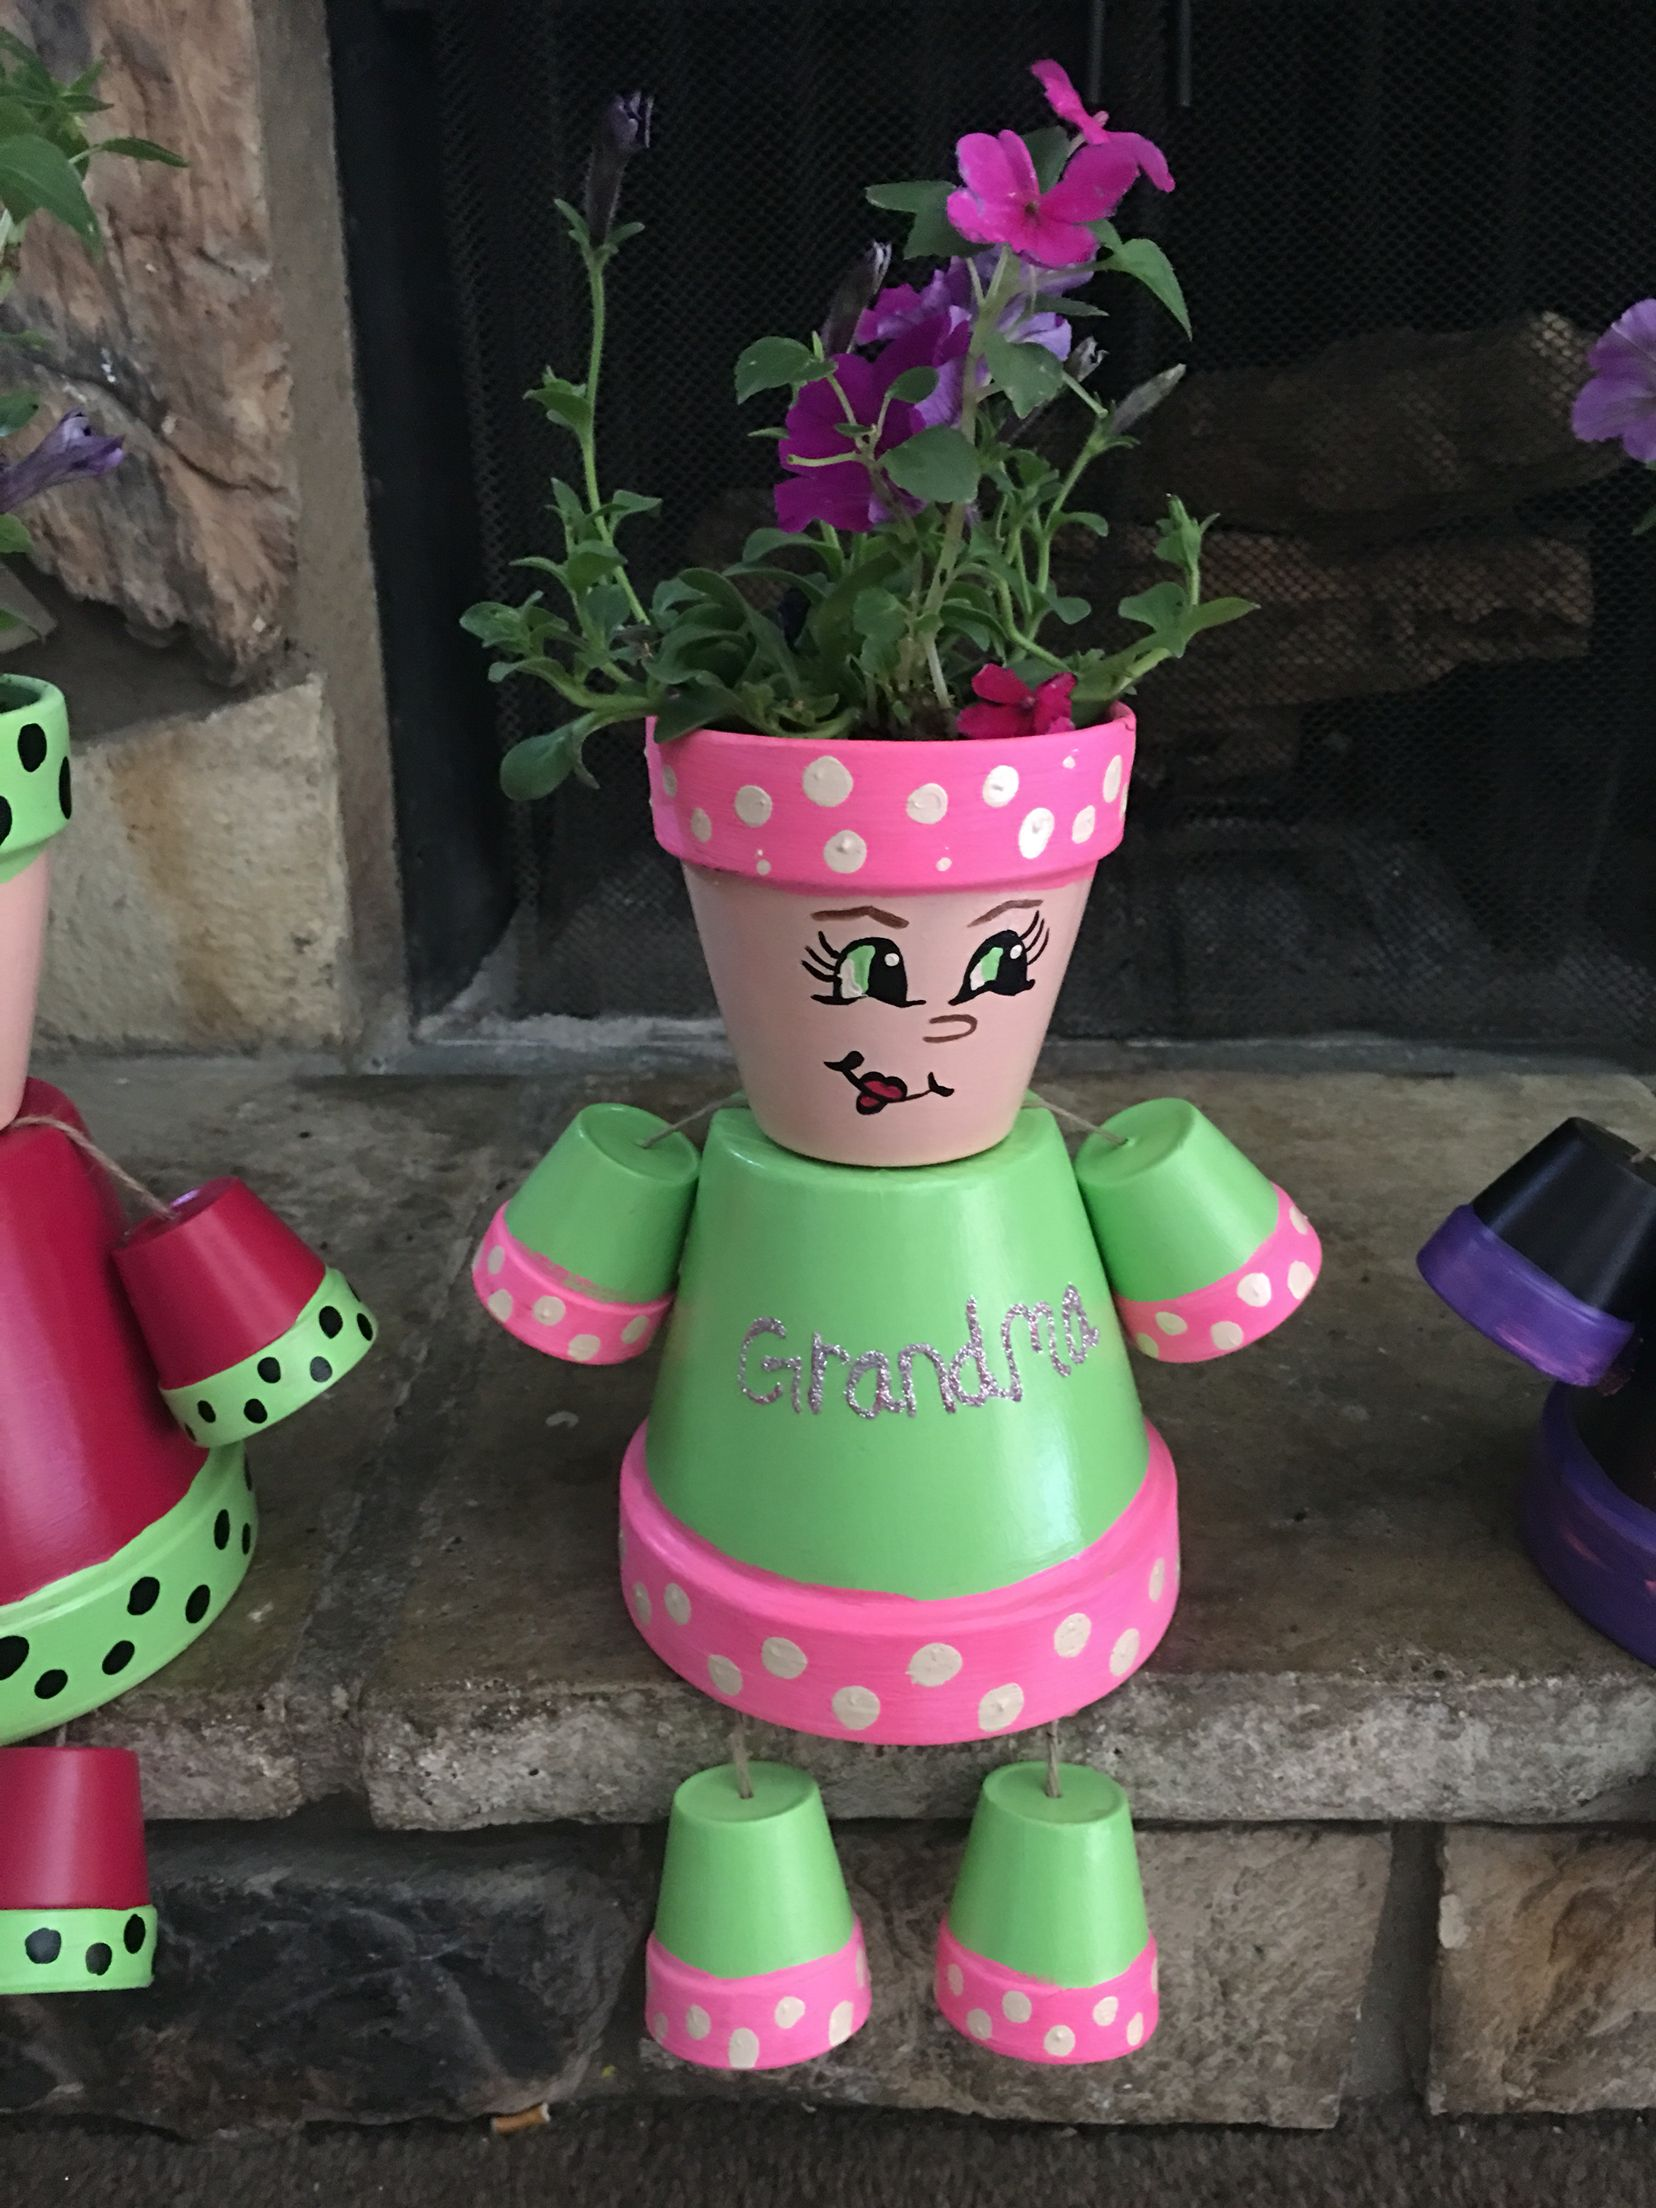 pin by ashley wright on mothers day pinterest clay flower pot people and clay pot people. Black Bedroom Furniture Sets. Home Design Ideas